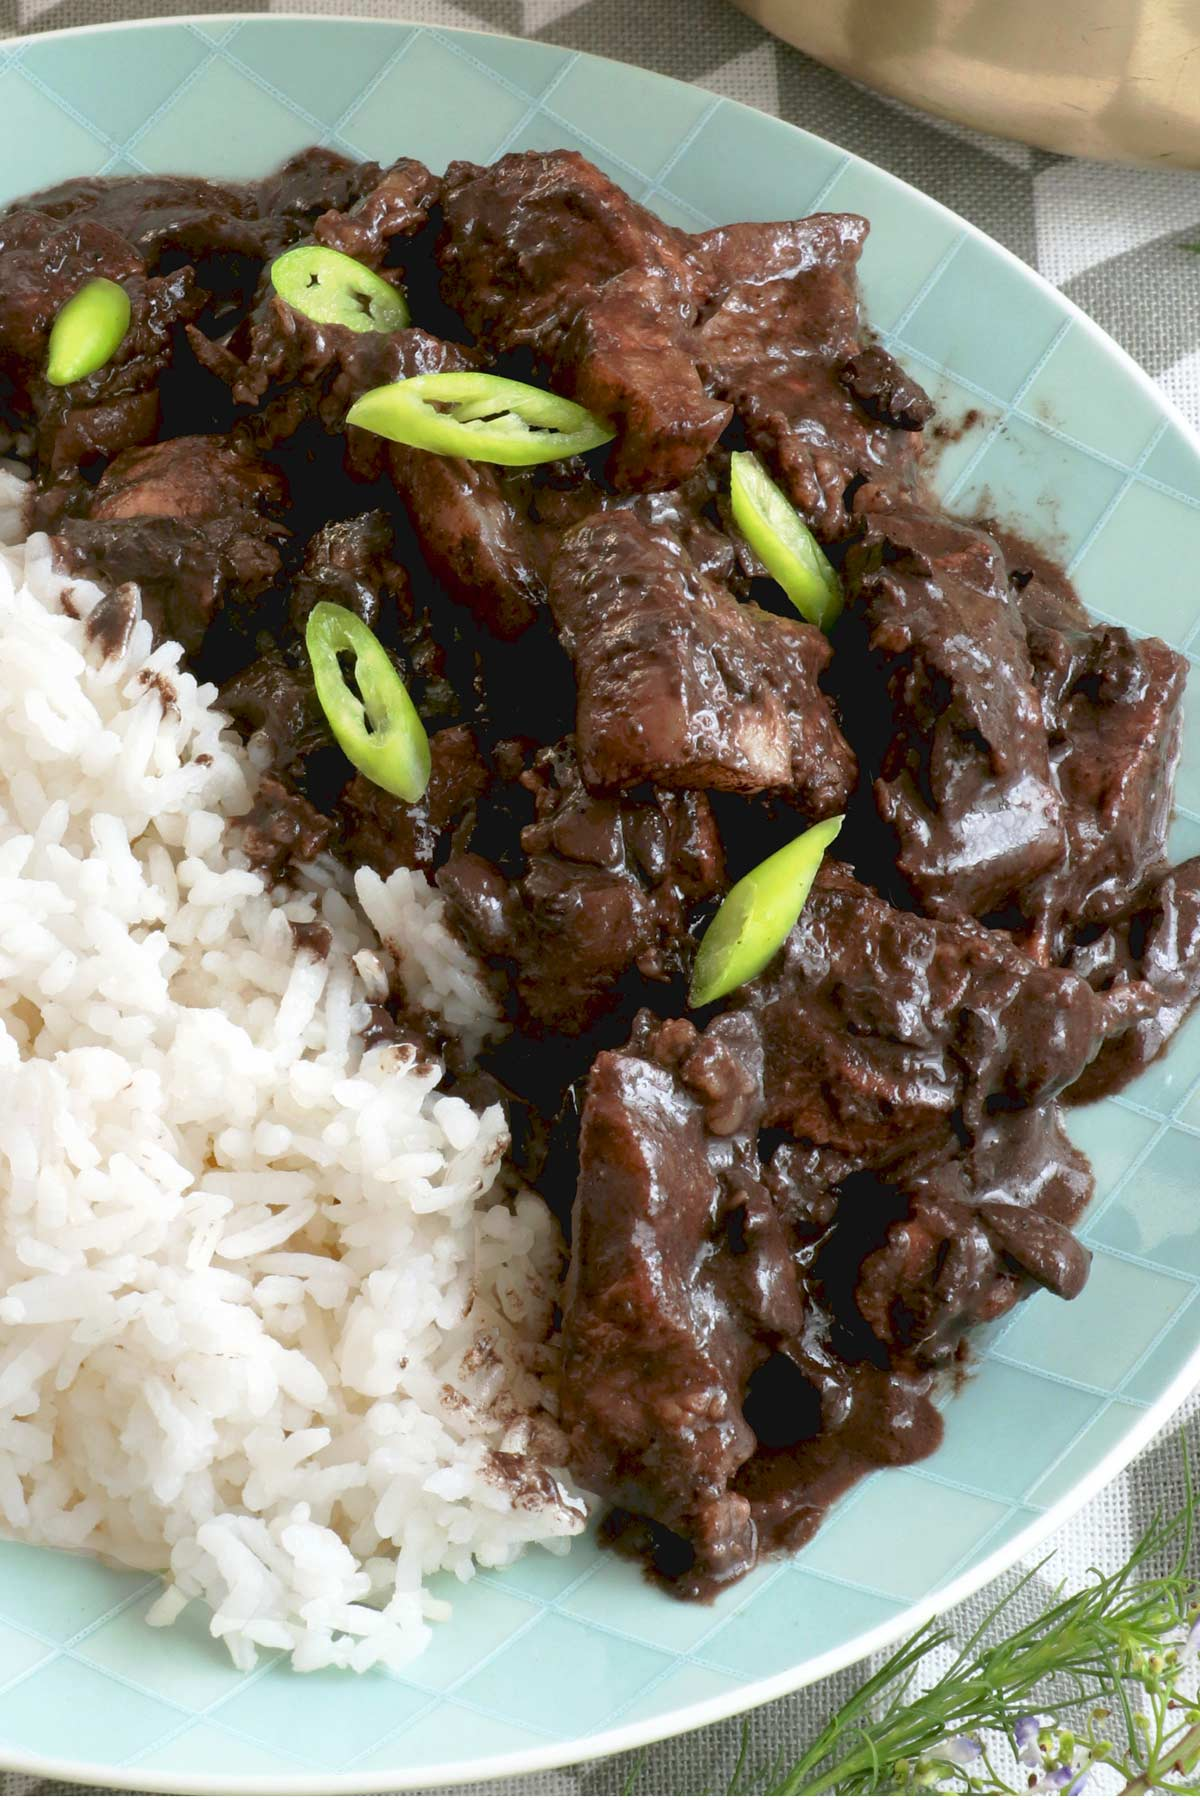 Dinuguan with rice on a plate.